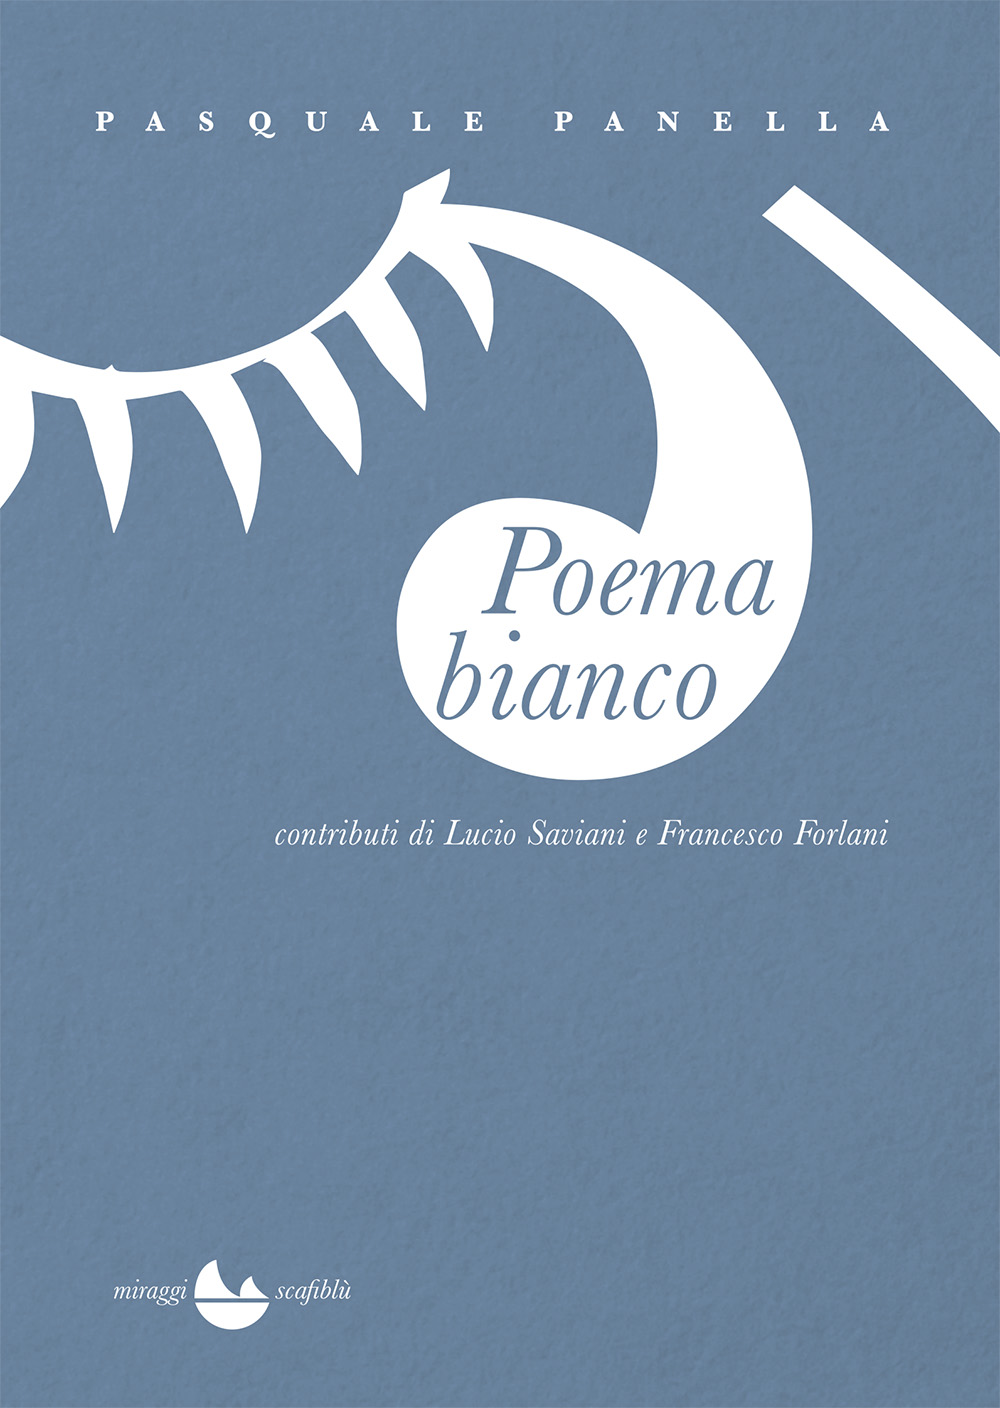 Panella_Poema-bianco-cover-copia